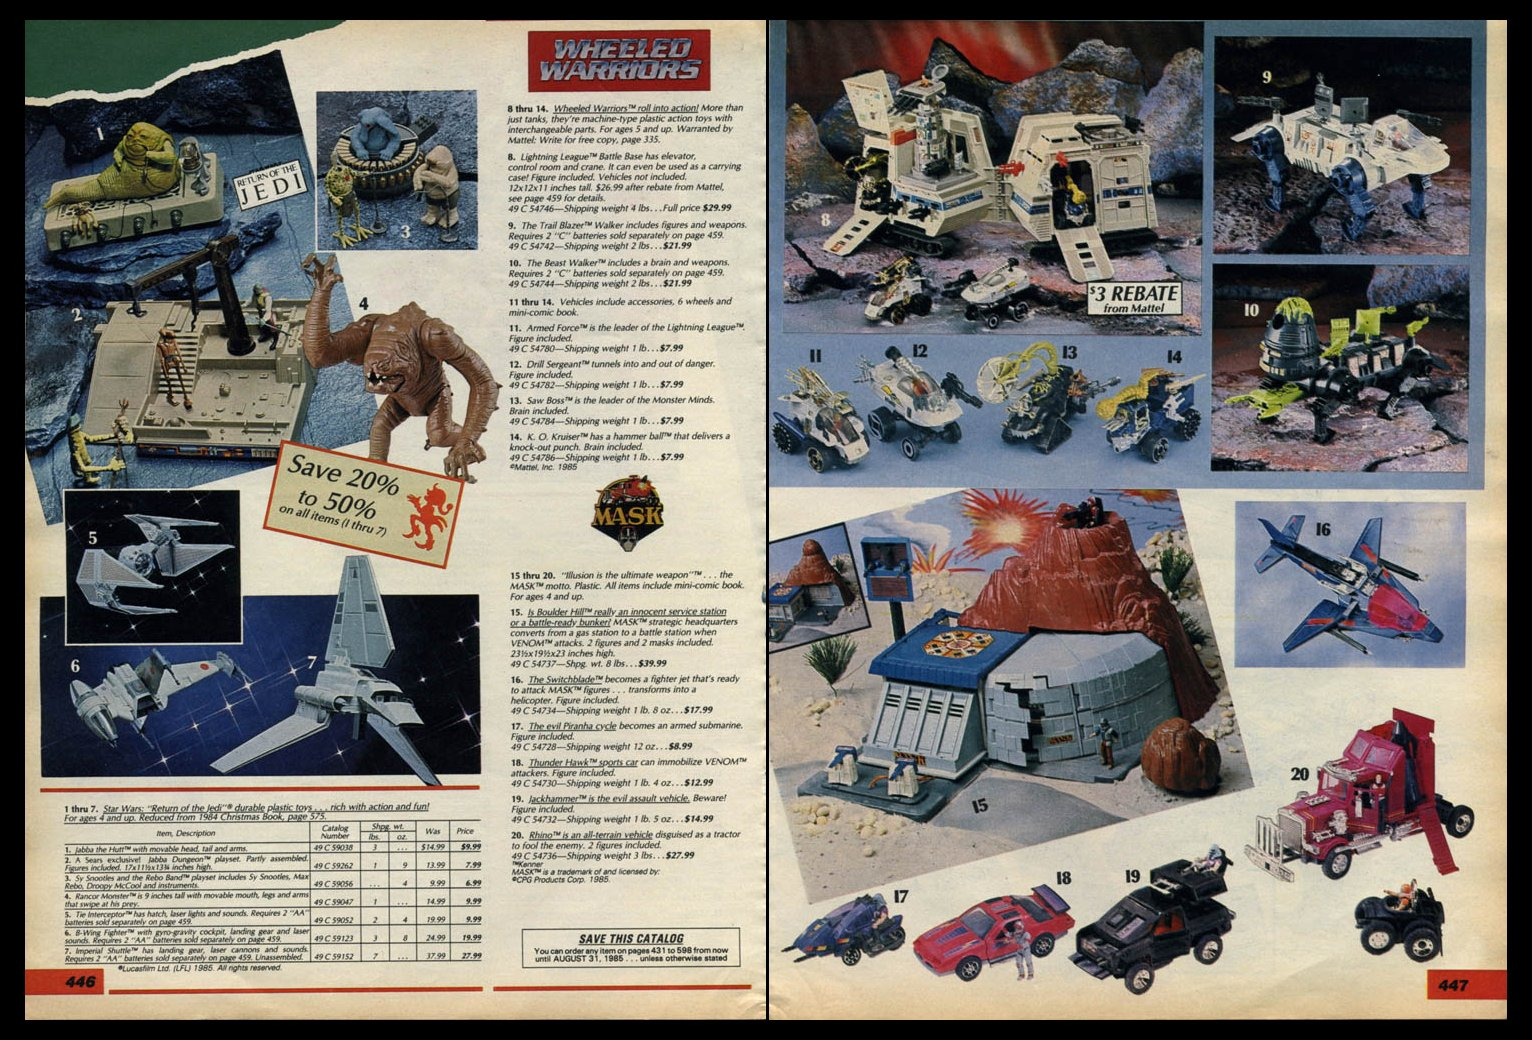 42 Vintage Christmas 'Wish Book' Catalogs That'll Make You